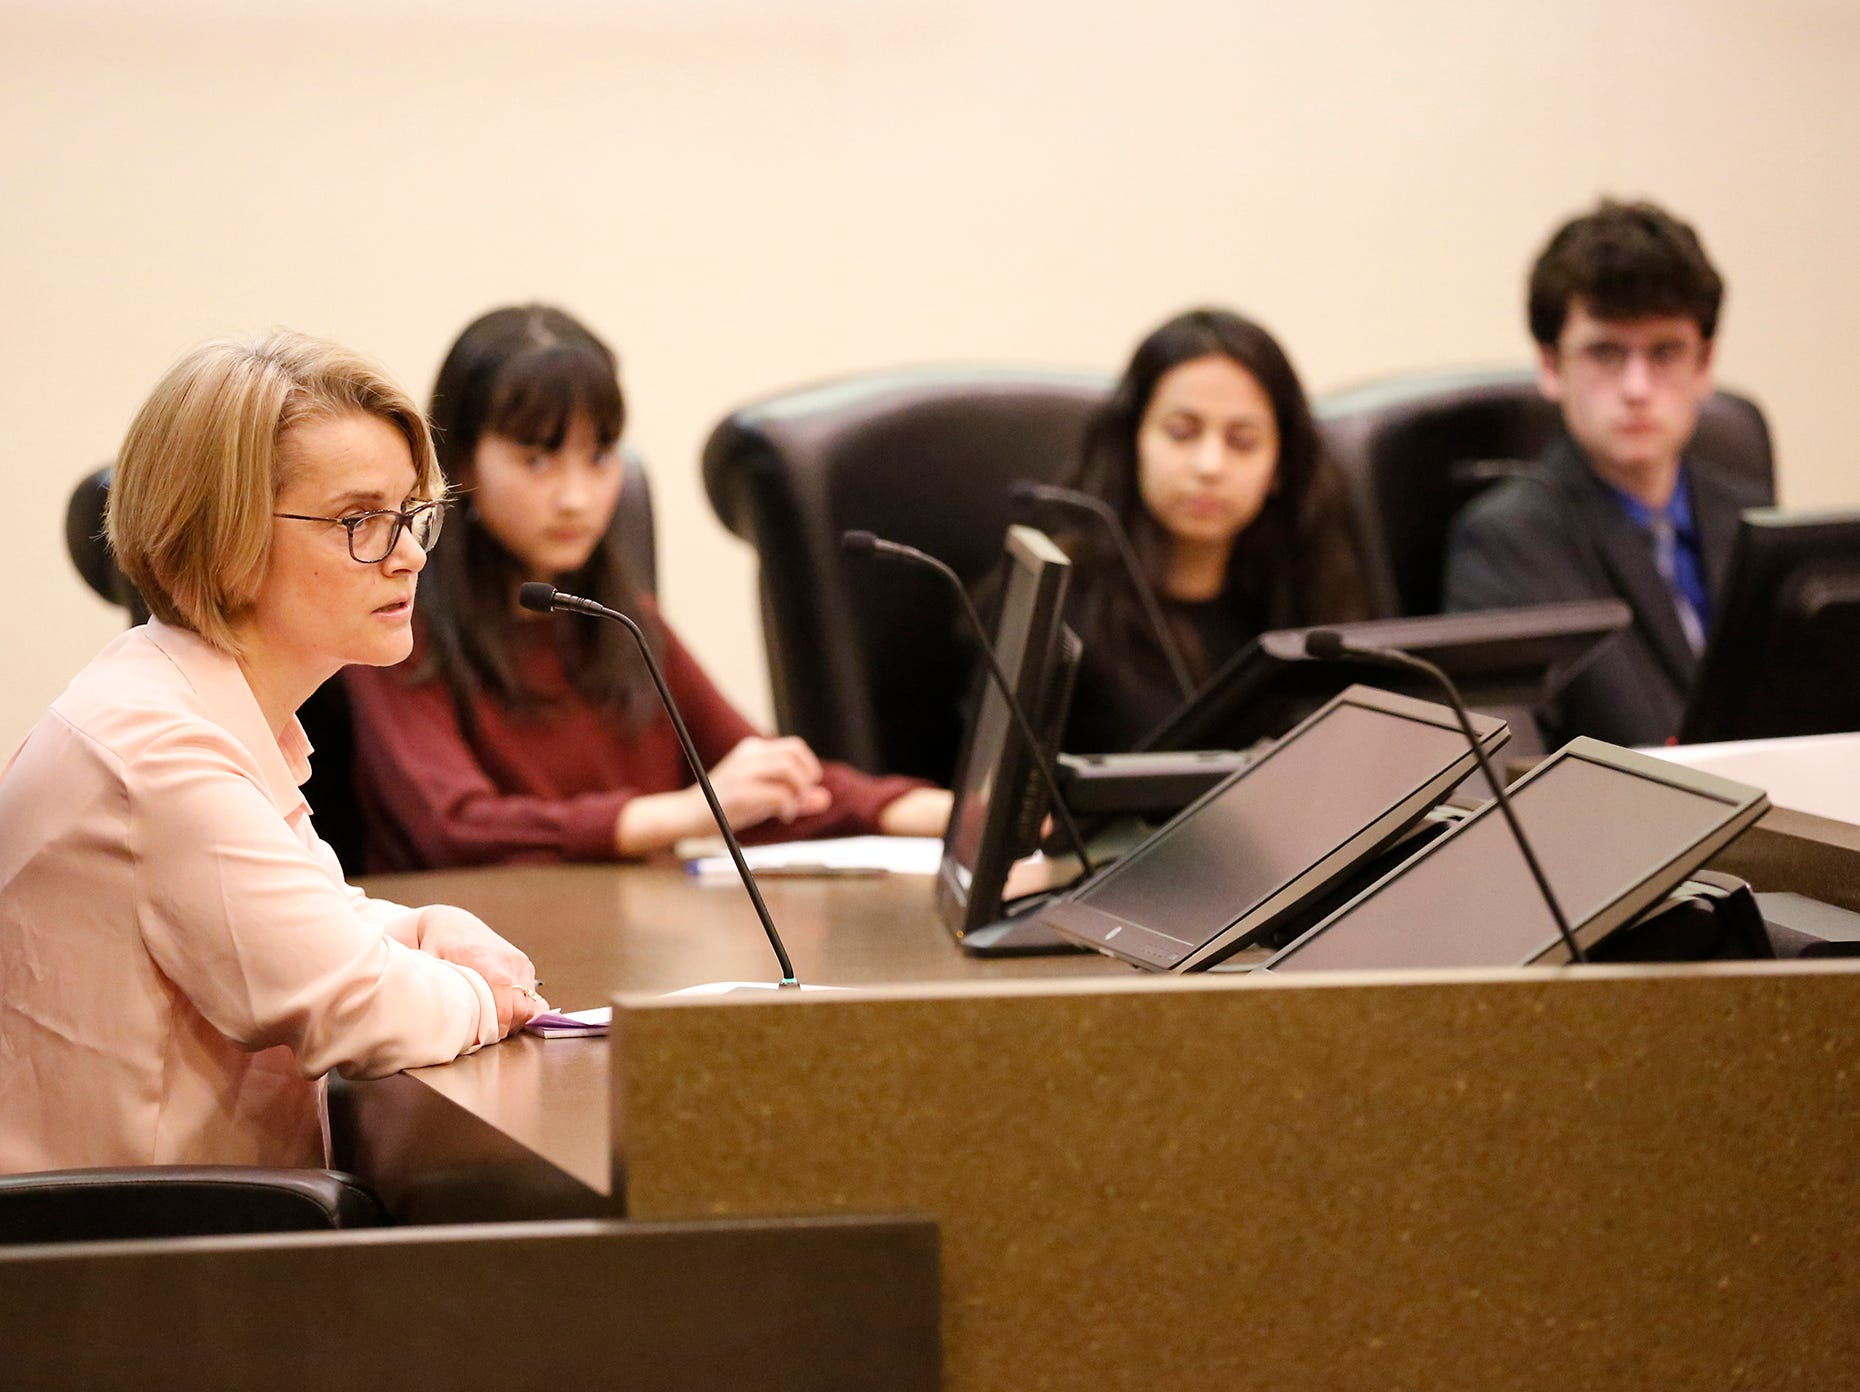 The Fond du Lac Family YMCA's Youth in Government program hosted a FDL School Board Candidate Forum Wednesday, March 20, 2019 at the City/County Government Center in Fond du Lac, Wis. Two of the candidates, Peggy Briester and Nick Teifke were on hand to answer questions by Youth In Government members. Doug Raflik/USA TODAY NETWORK-Wisconsin